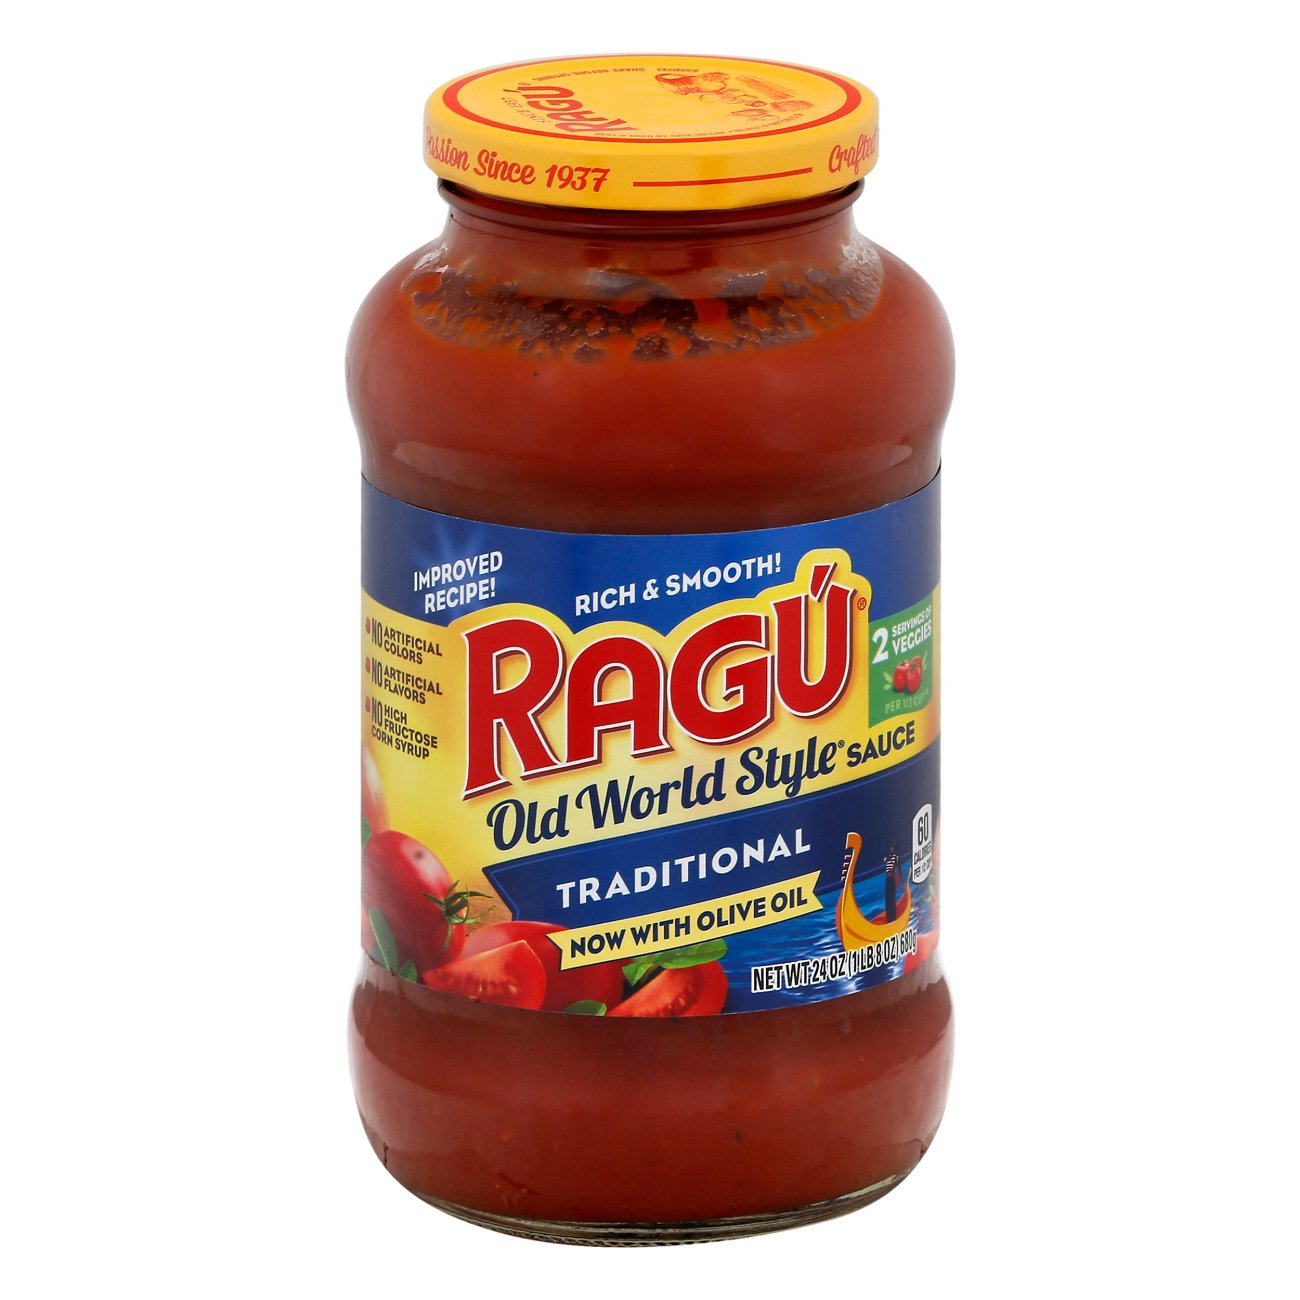 Ragu Old World Style Traditional Pasta Sauce ‑ Shop Pasta Sauces at H‑E‑B